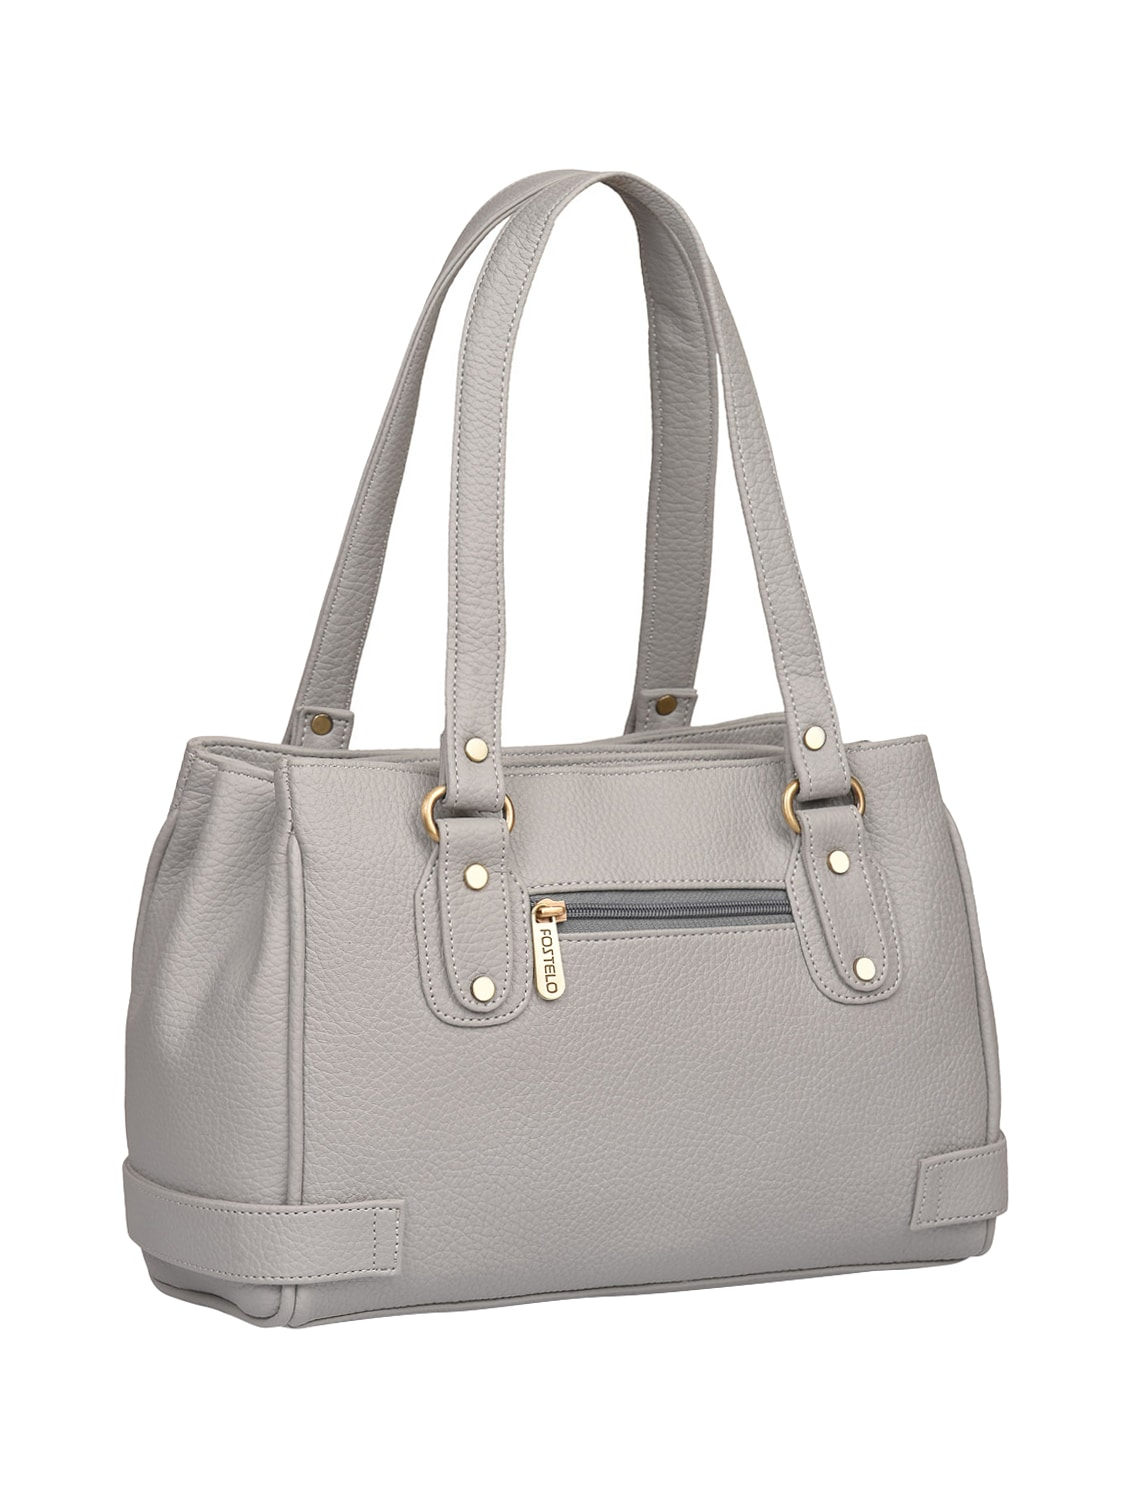 825b04e5e04 Buy Grey Leatherette (pu) Regular Handbag for Women from Fostelo for ₹799  at 65% off | 2019 Limeroad.com